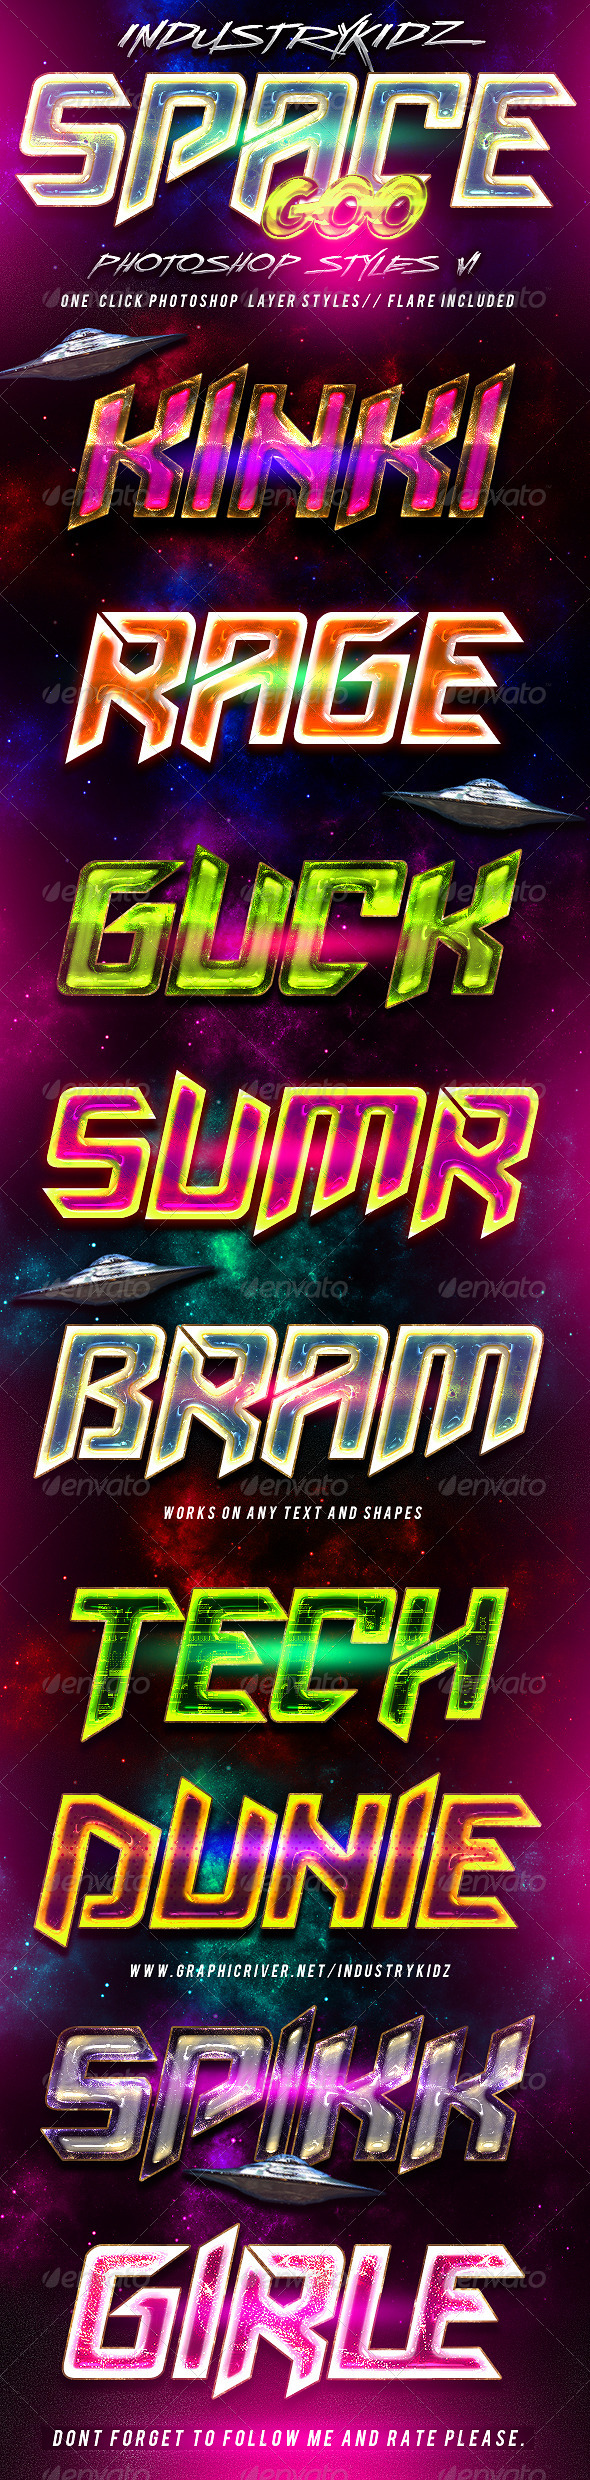 Space Goo Photoshop Styles V1 - Text Effects Styles